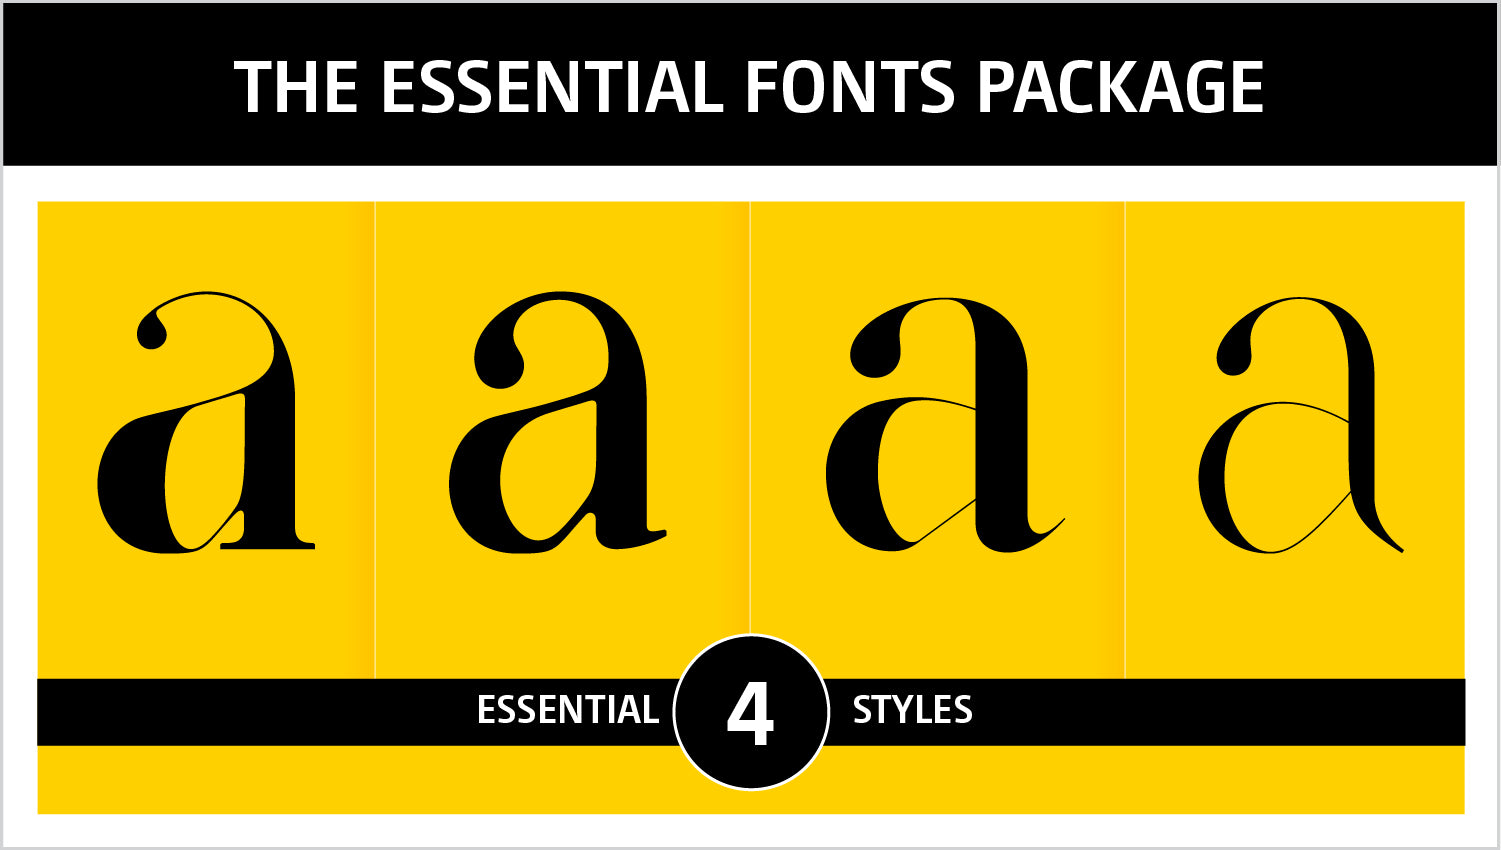 The essential fonts package